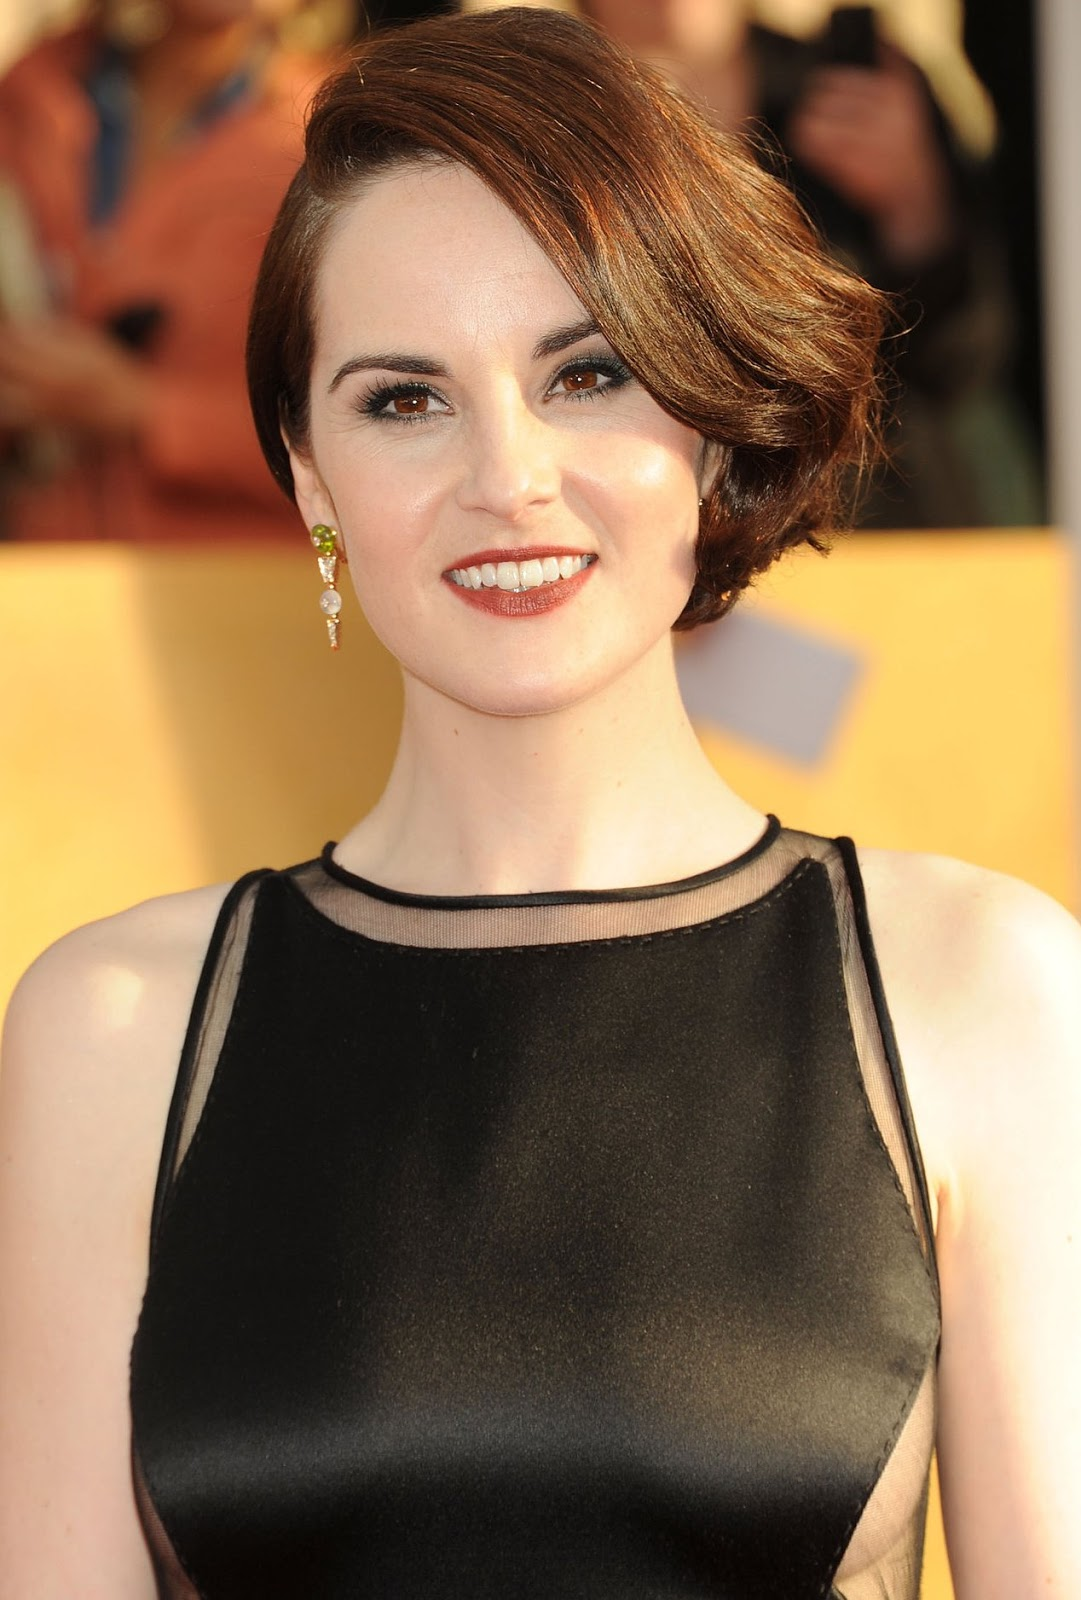 Michelle Dockery (born 1981)